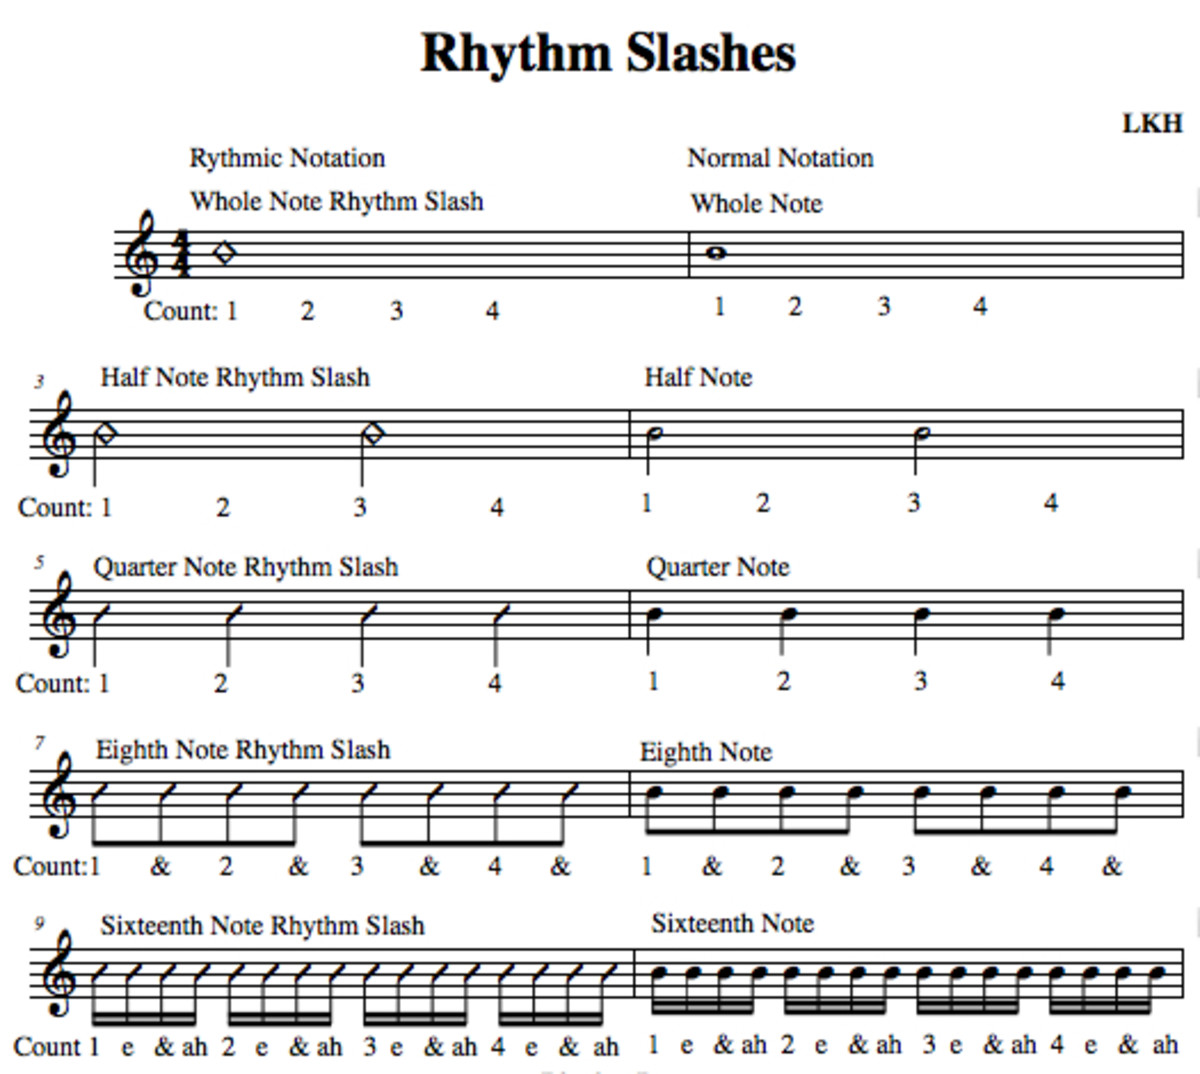 Rhythm slashes related to standard notation.